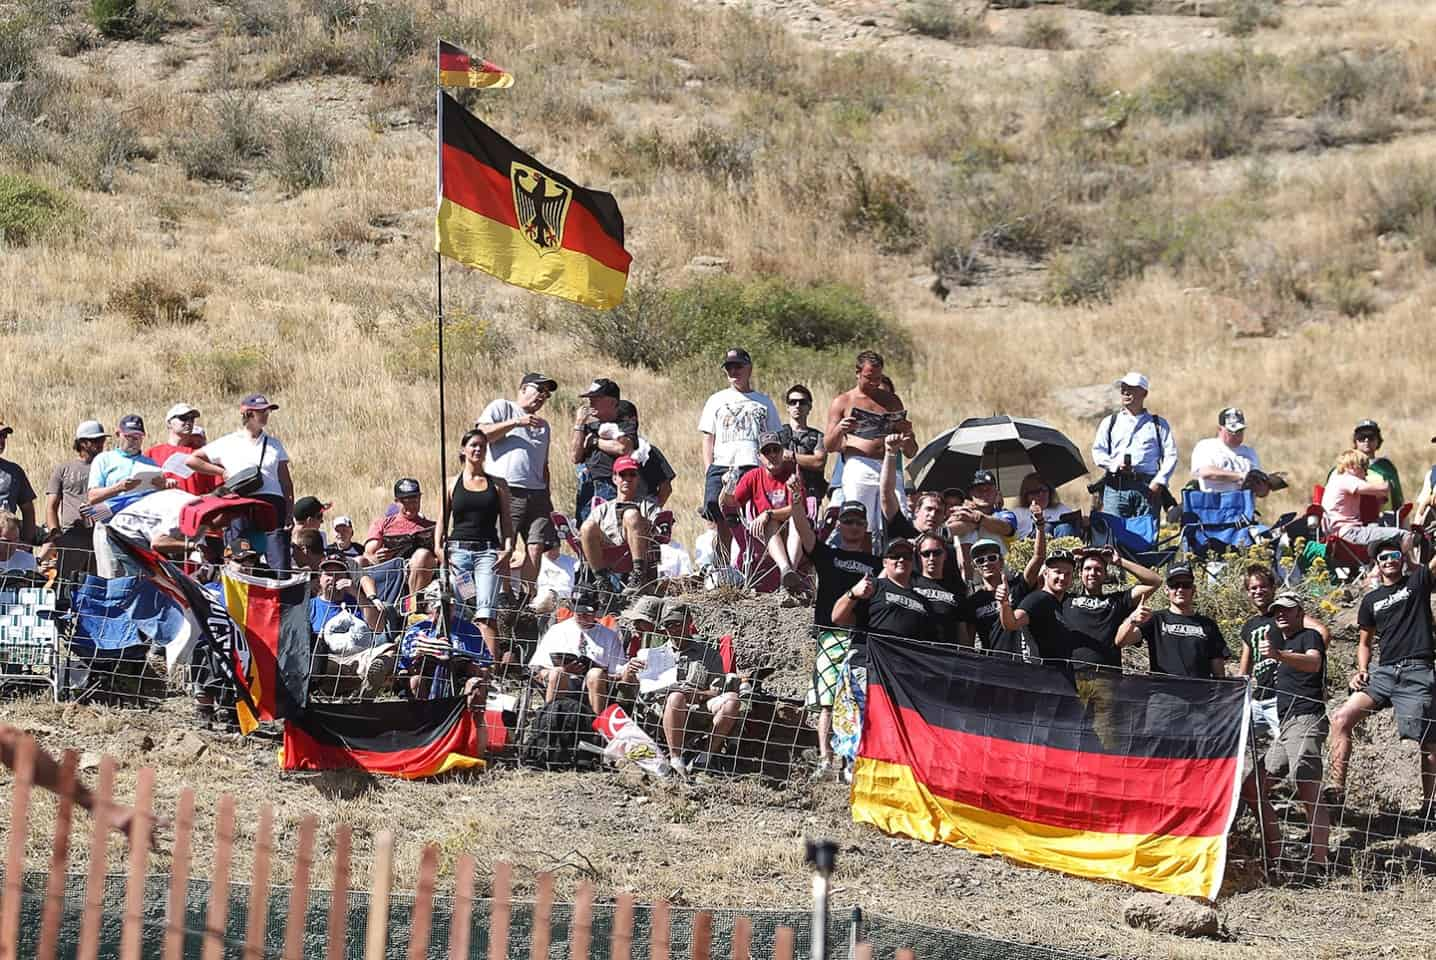 Motocoss of Nations 2010 in Lakewood, Colorado - Fans Team Germany